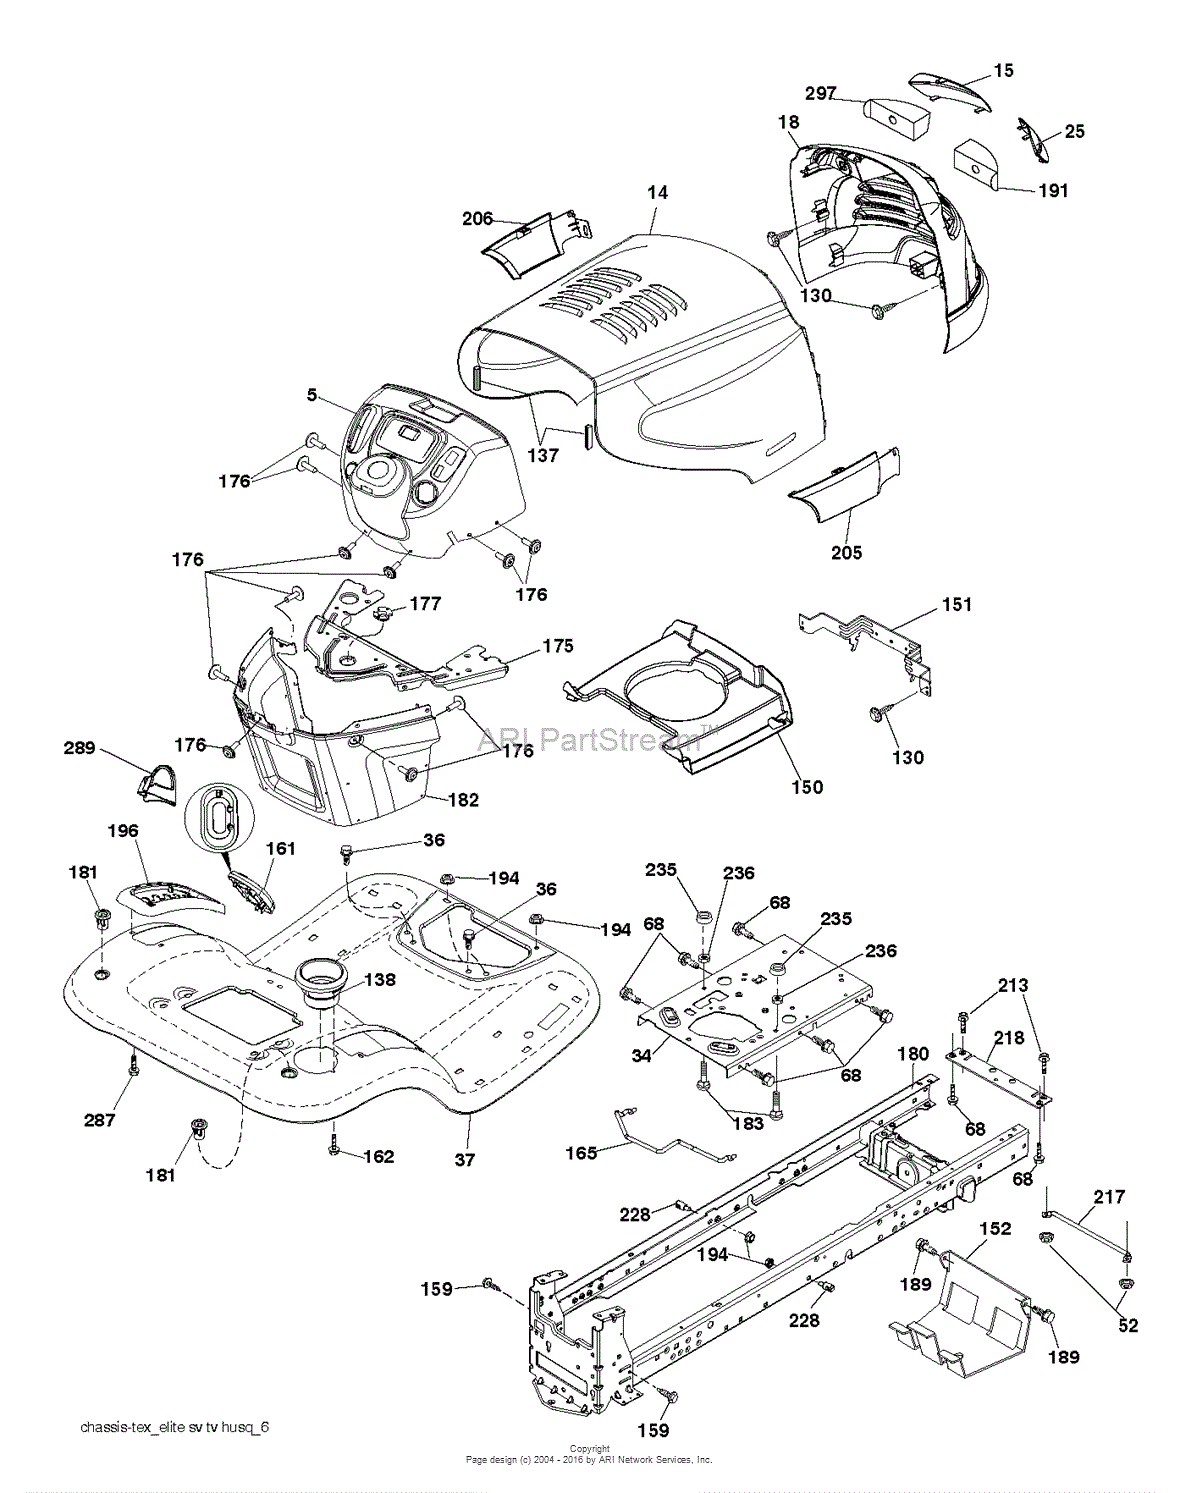 Poulan PB20H42YT - 96042012404 (2011-08) Parts Diagram for CHASSIS ...